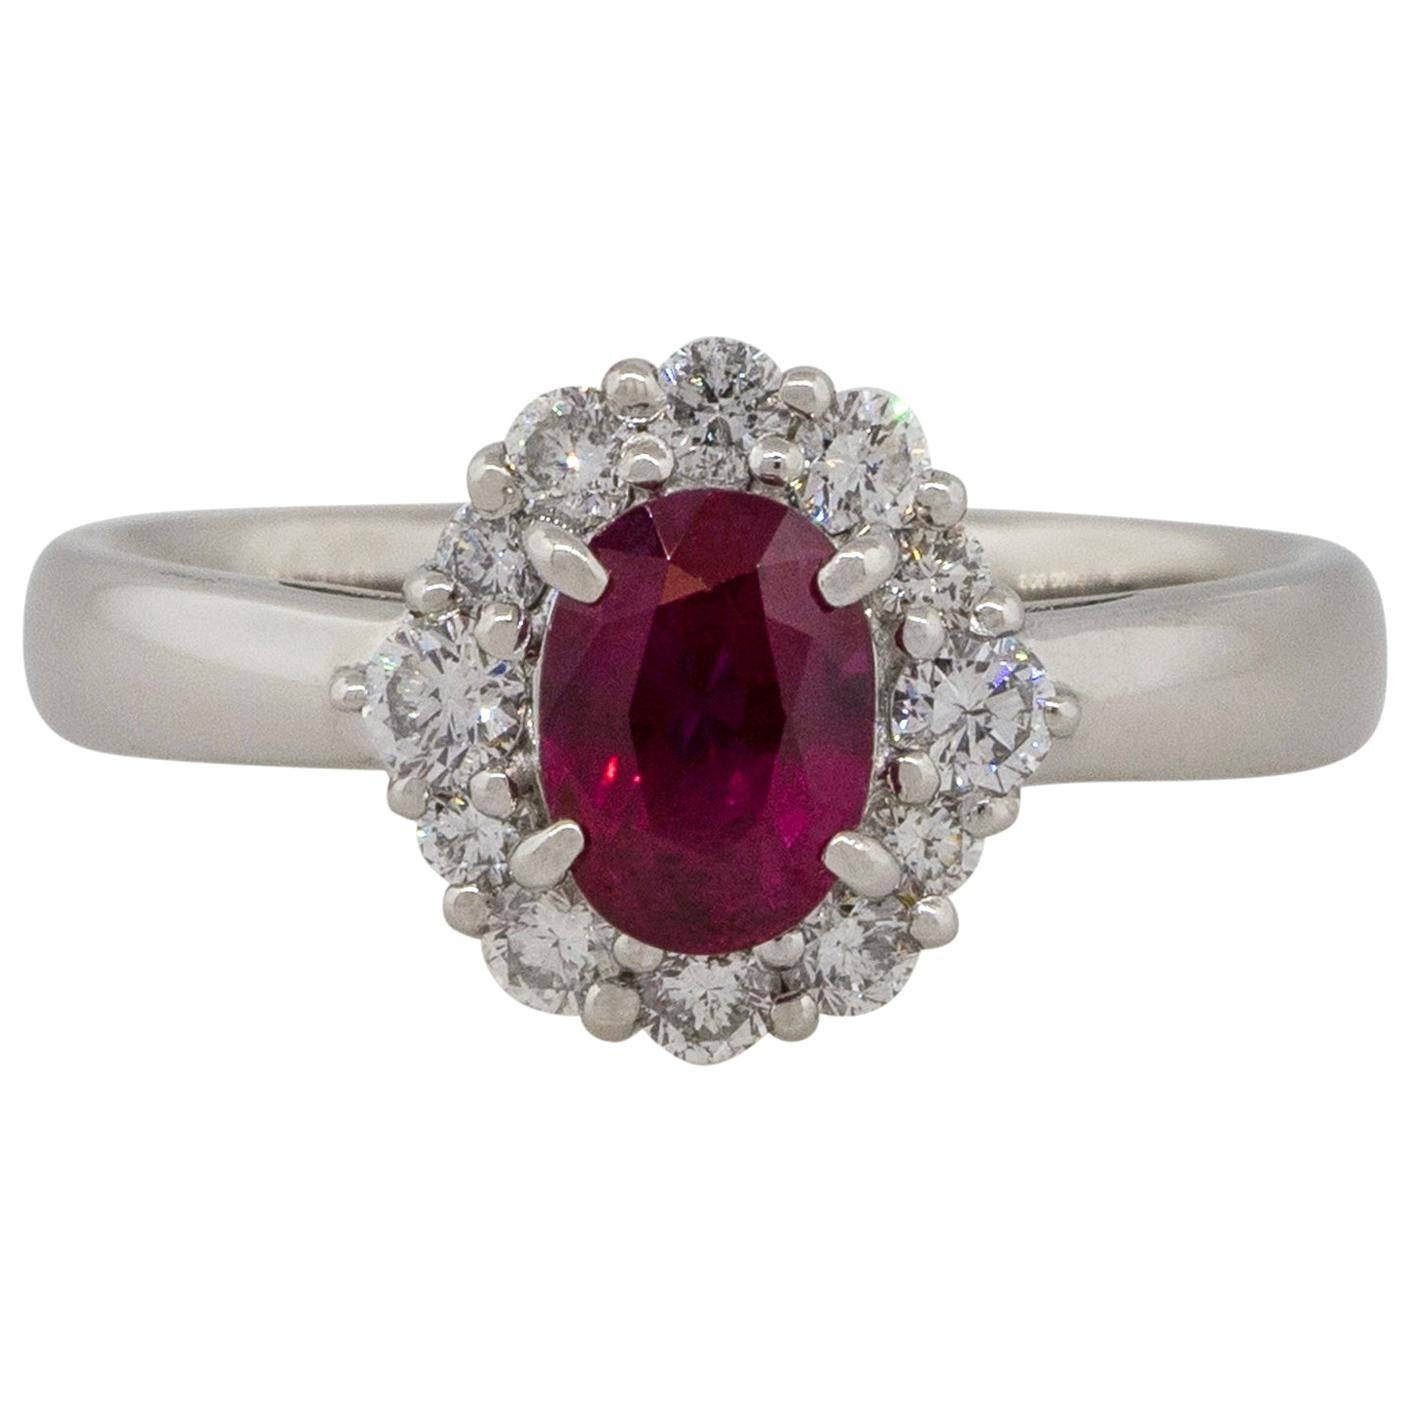 1.12 Carat Oval Ruby Center Diamond Halo Ring Platinum in Stock